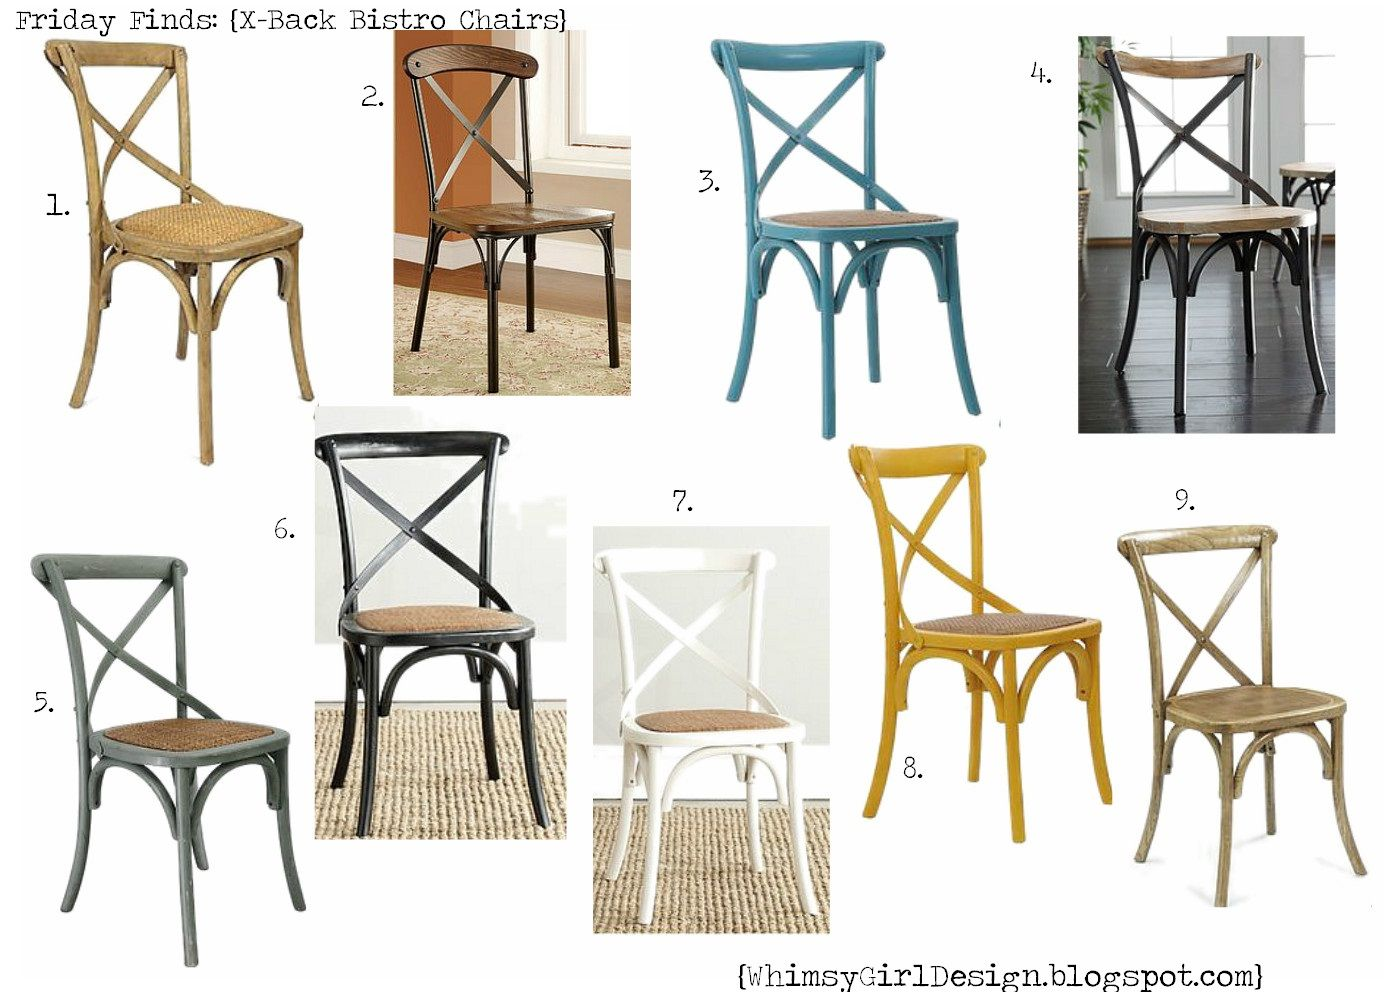 180 For 2 Chairs Other Colors Too Target P French